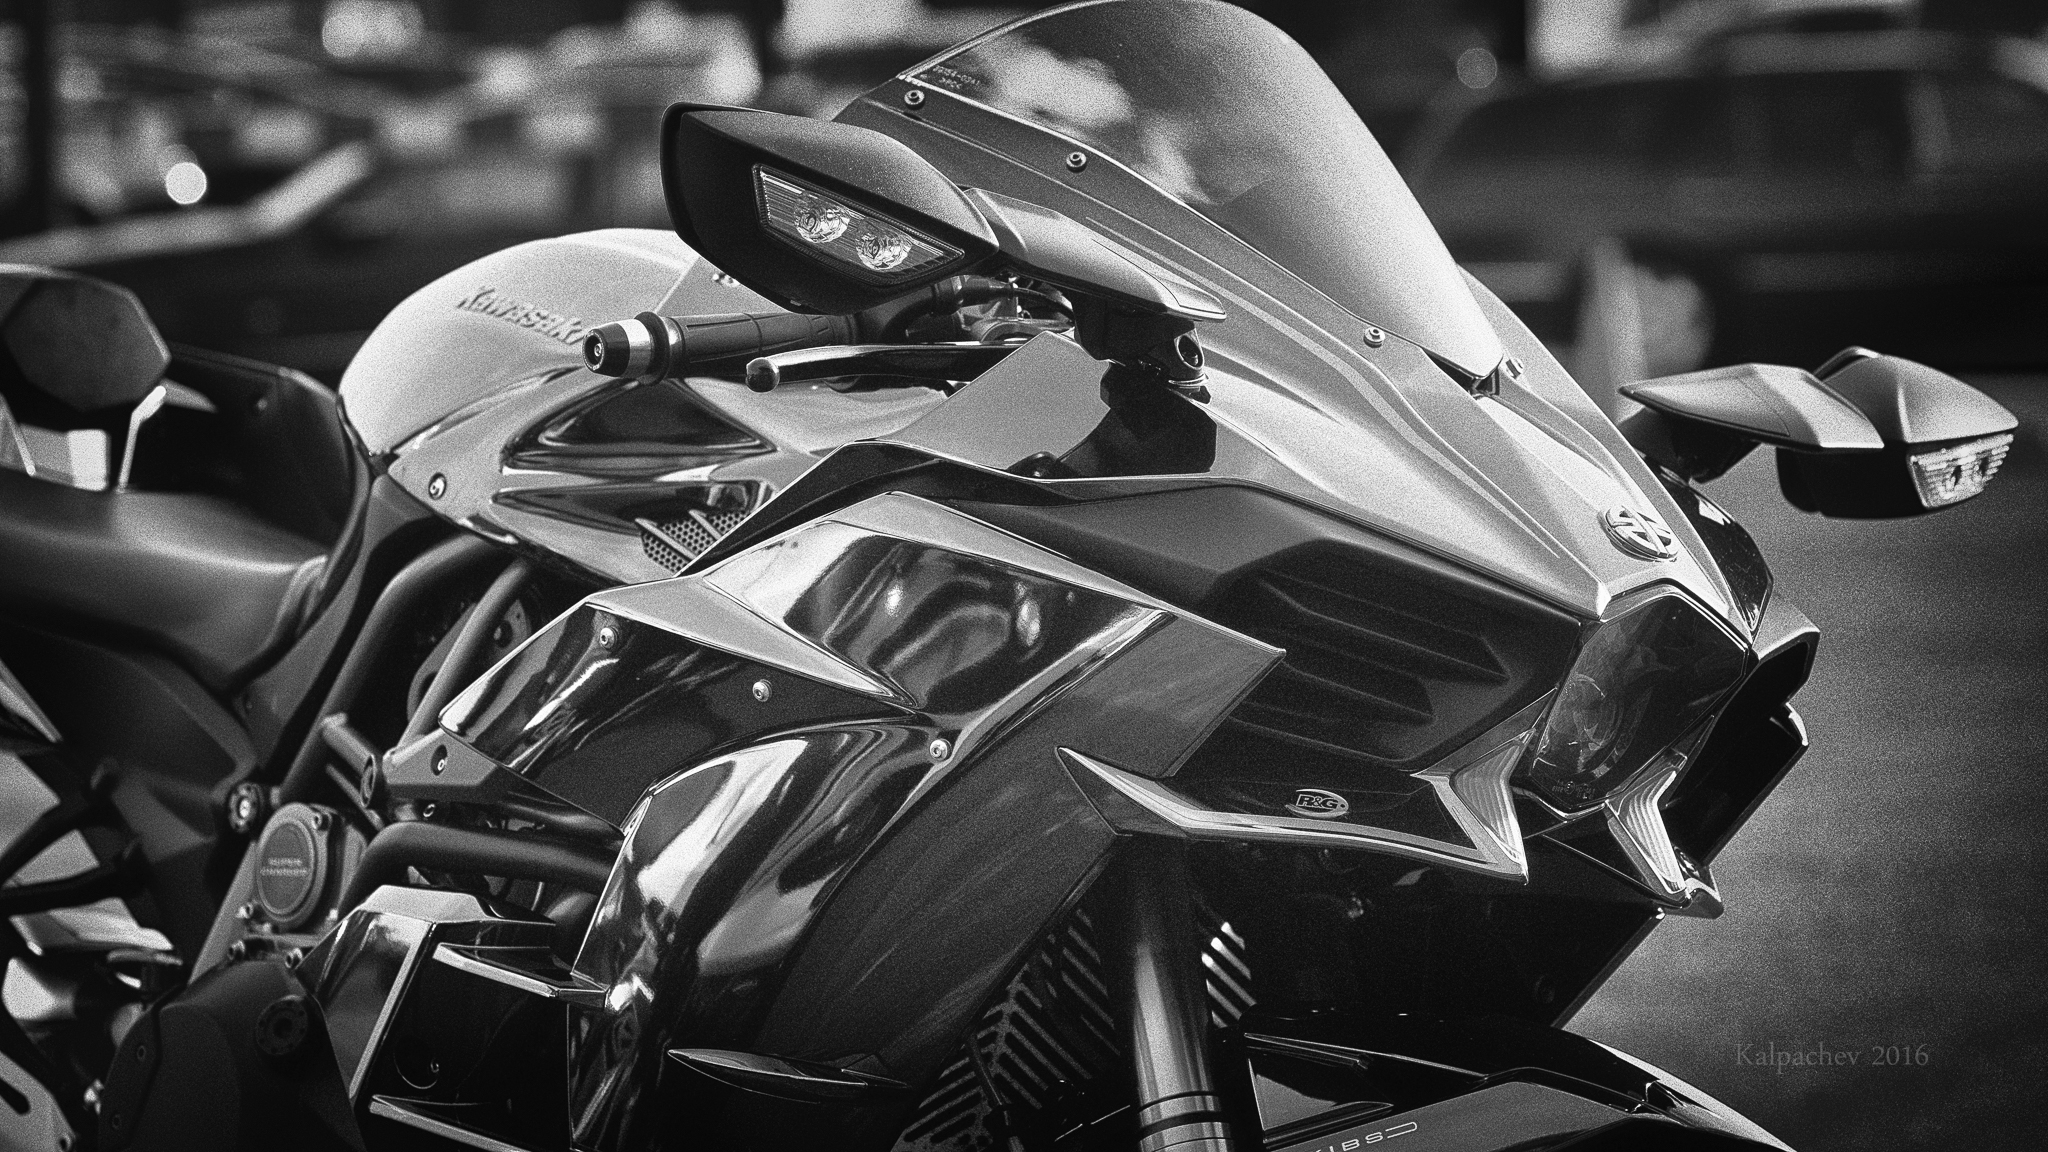 Kawasaki Ninja H2 at Ace Cafe London